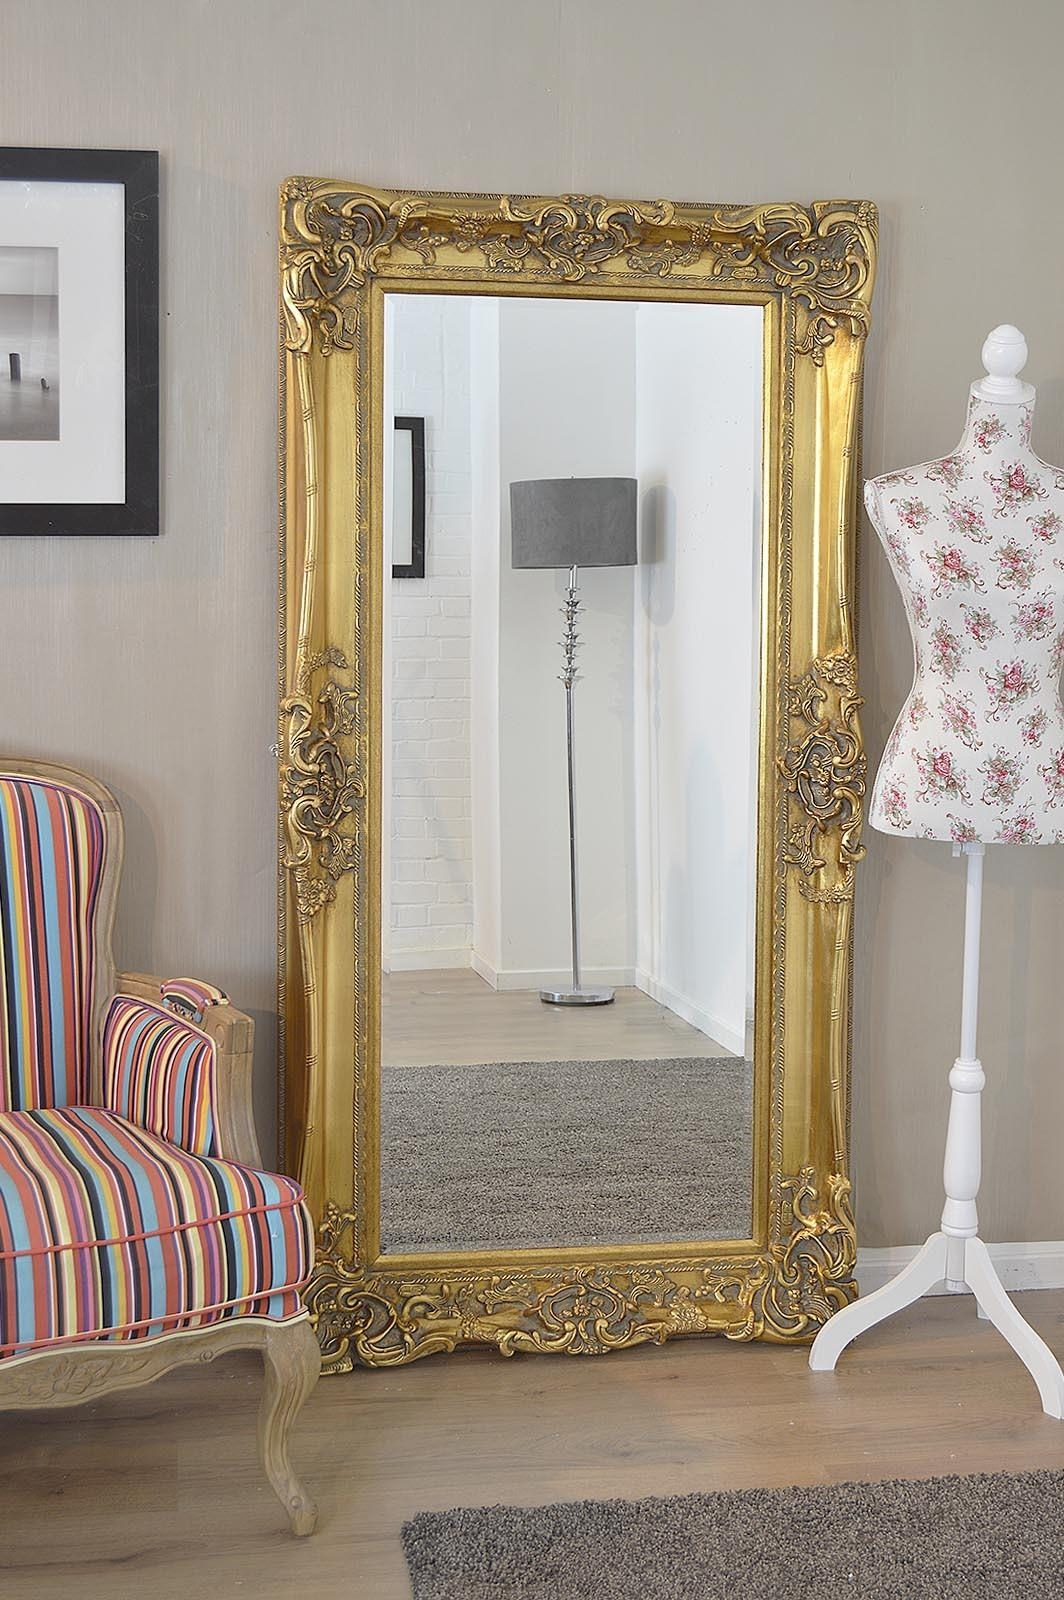 Classic Impression On Antique Wall Mirrors | Vwho Inside Oversized Antique Mirror (View 3 of 20)